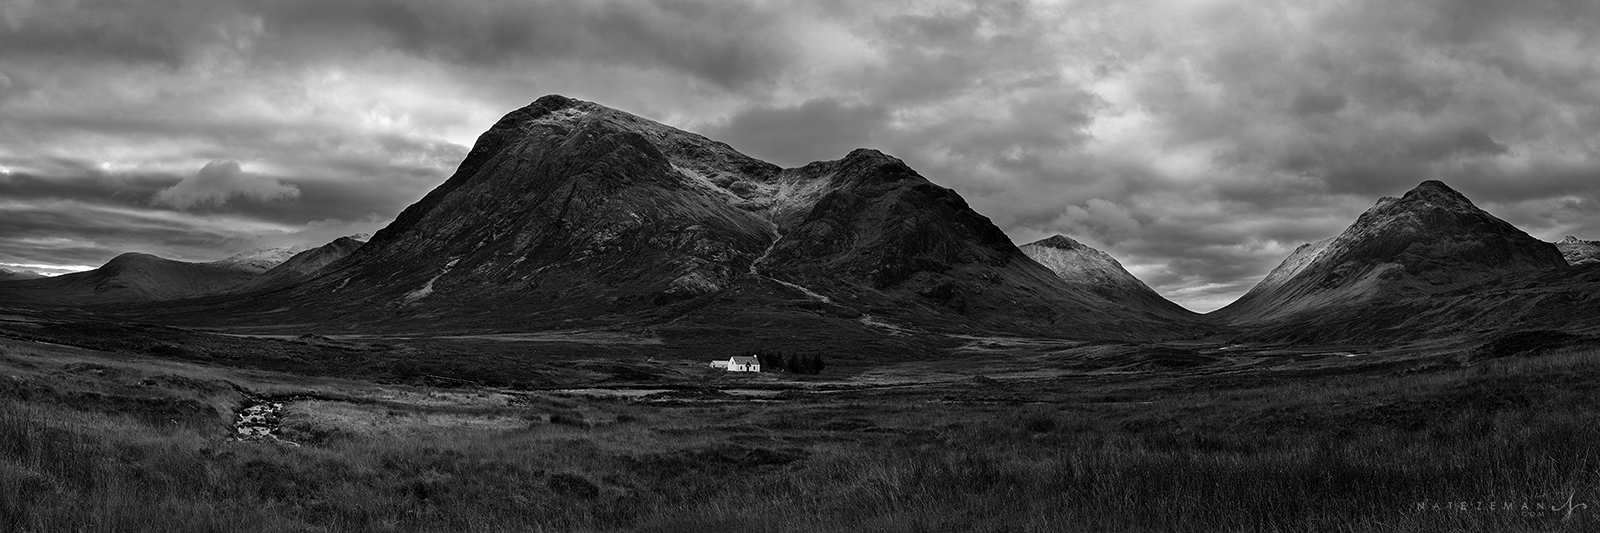 glencoe, scotland, highlands, black and white, , photo